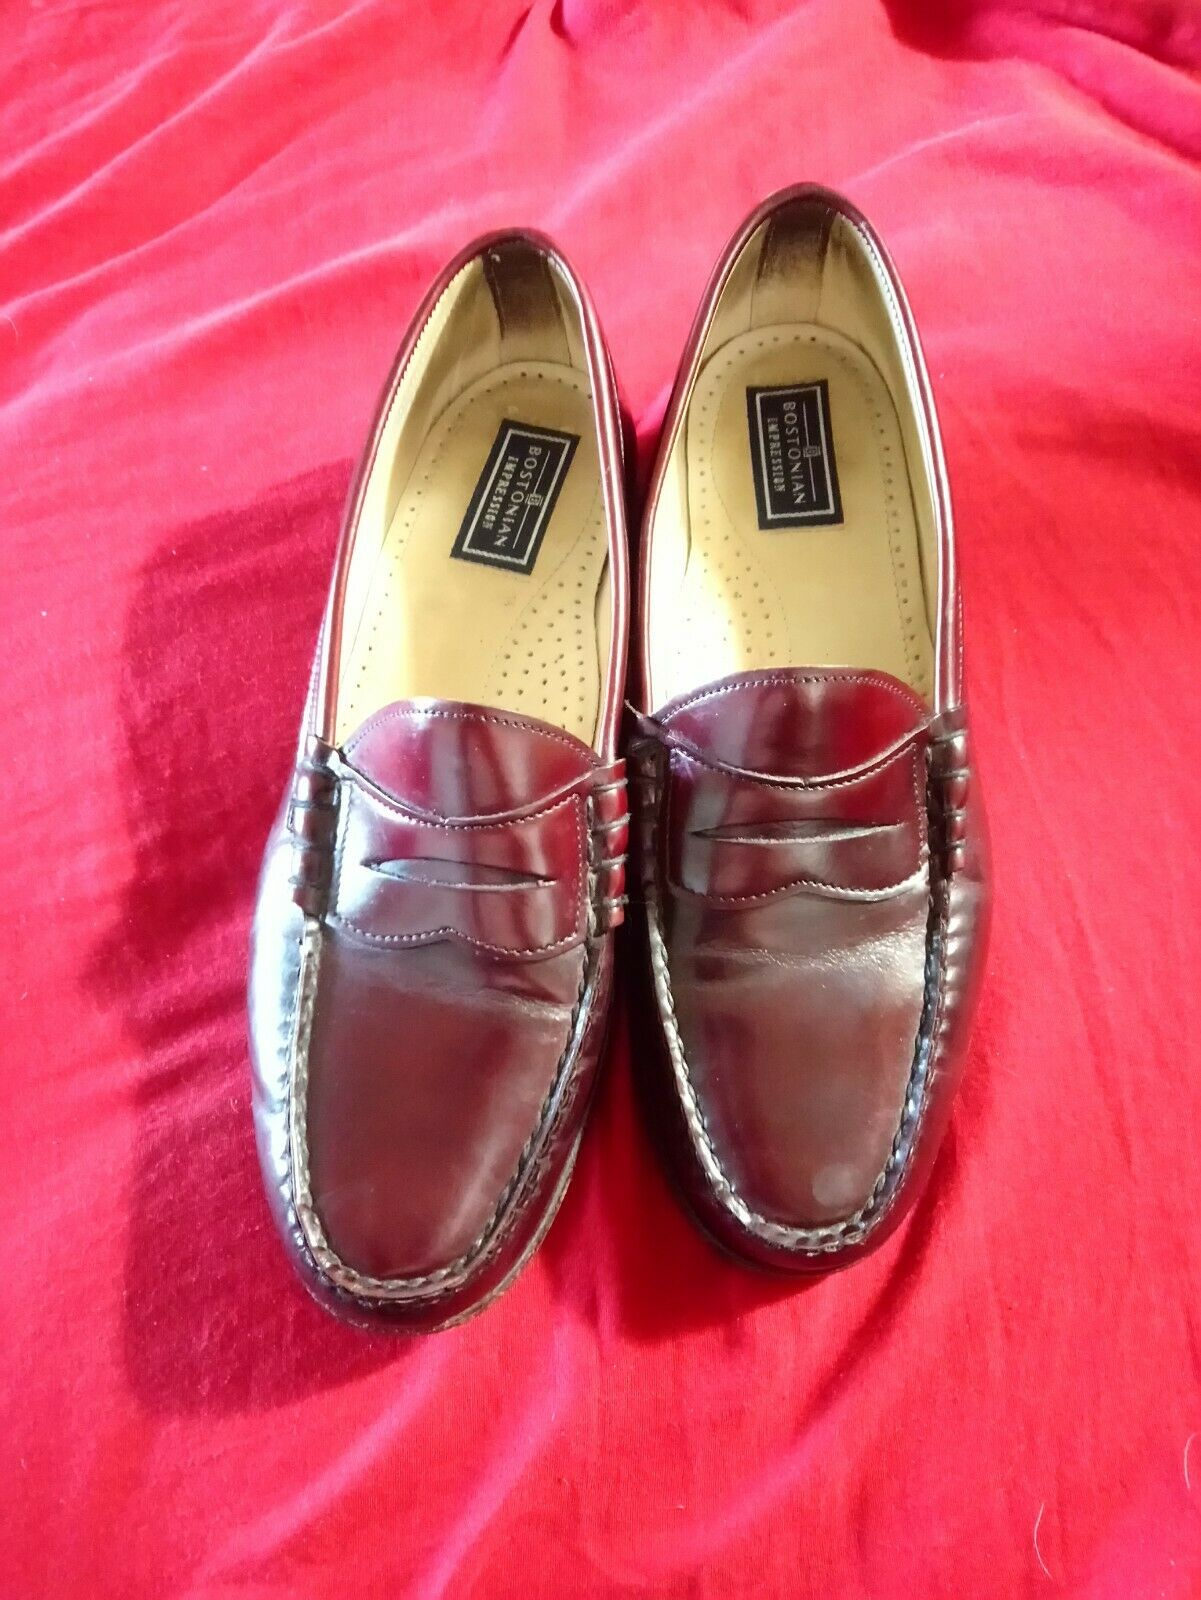 Men's Bostonian Impressions Penny Loafer 8 1 5 D B Leather Shell Cordovan color